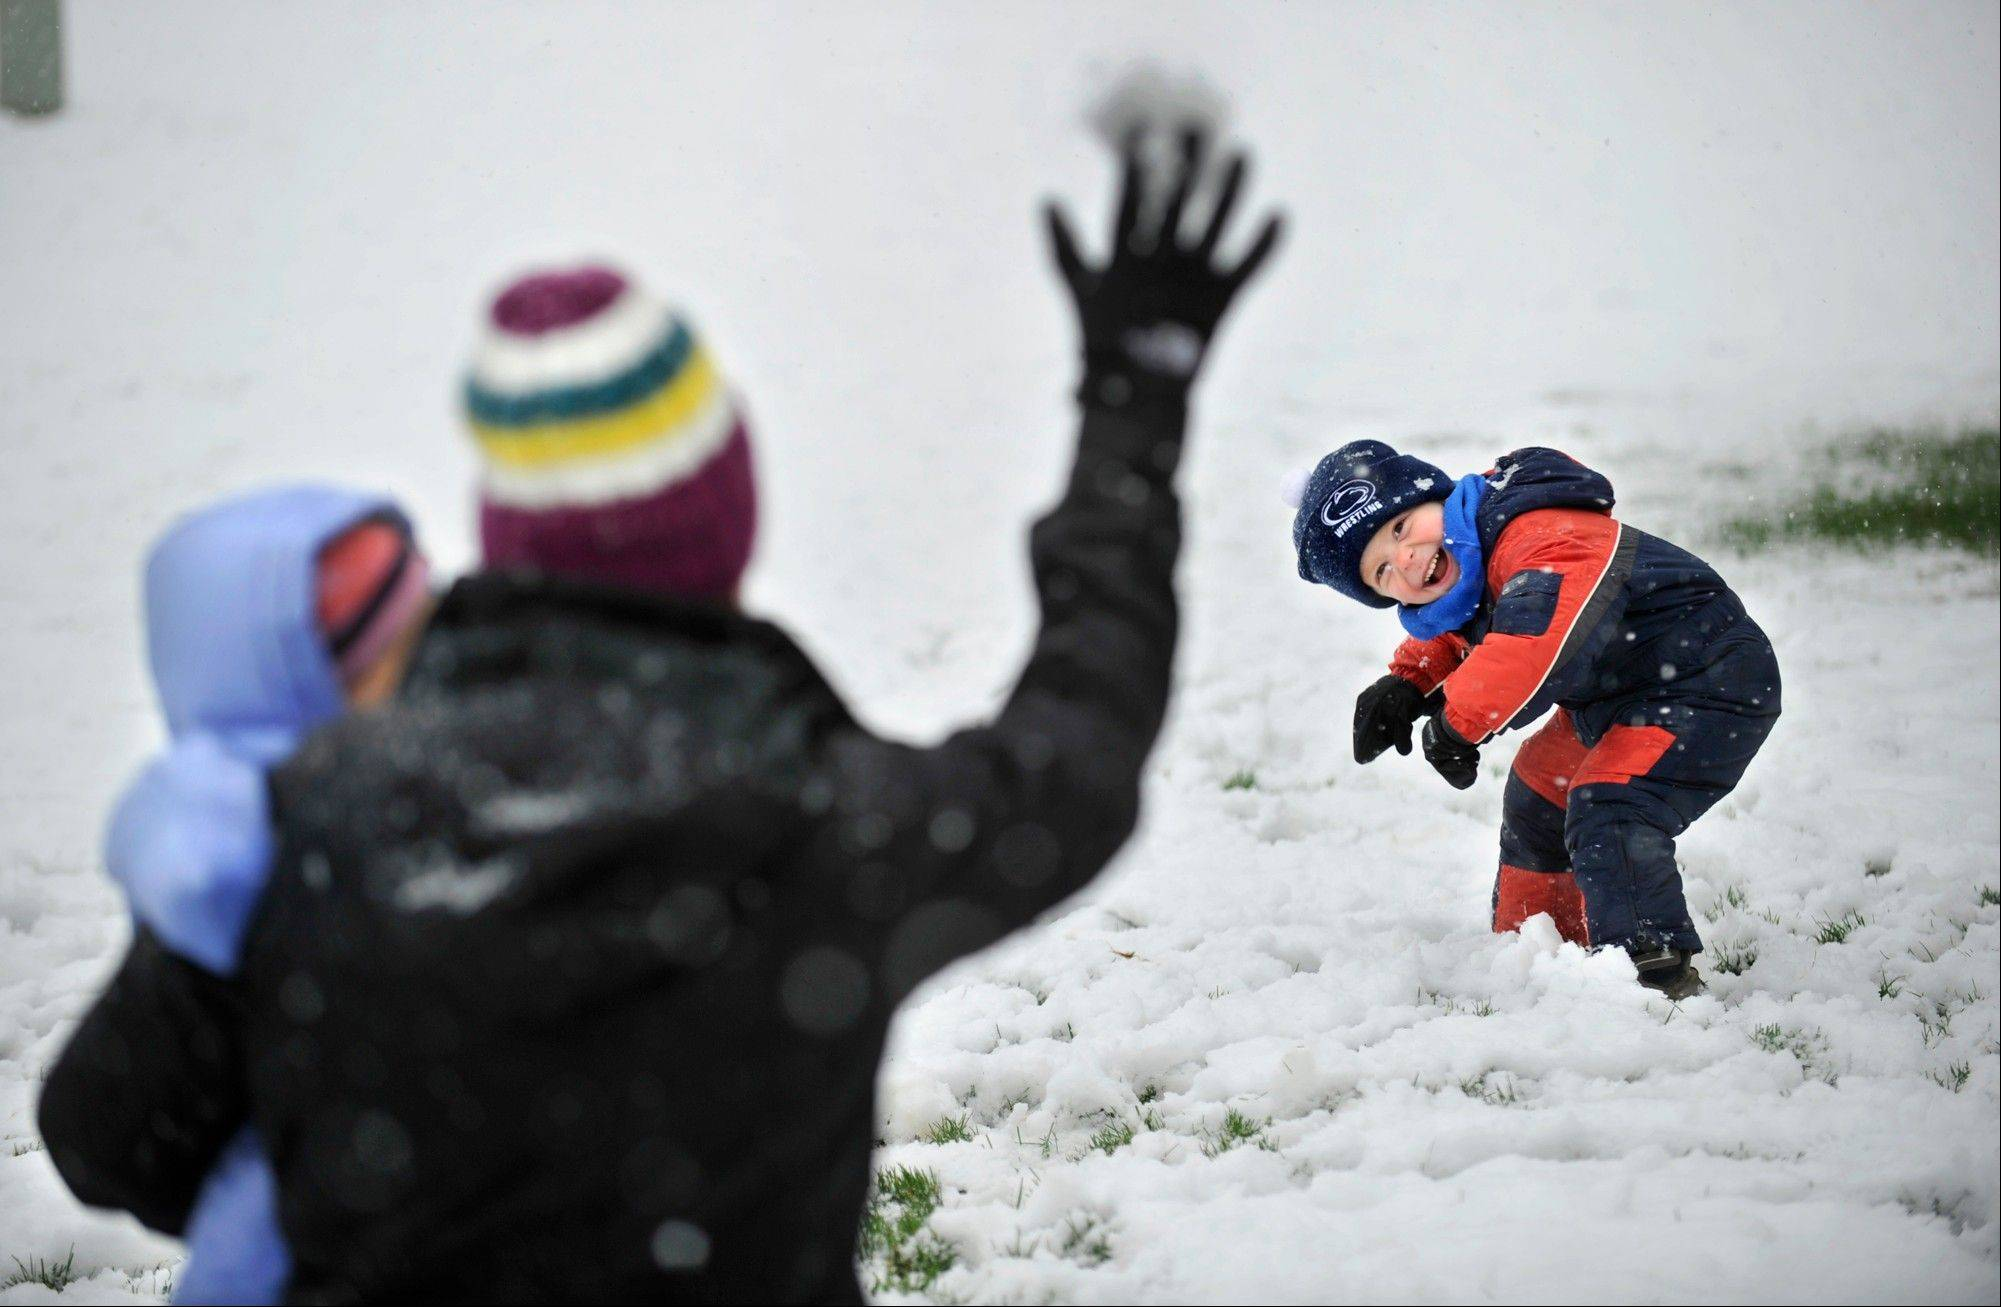 Evan Dreibelbis, 3, tries to avoid a snowball during a snowball fight in fresh snow in their front yard with his mother Dana Dreibelbis and sister Elle Monday, April 23, 2012 in Pine Grove Mills, Pa. A spring nor'easter packing soaking rain and high winds churned up the Northeast Monday morning, unleashing a burst of winter and up to a foot of snow in higher elevations inland, closing some schools and sparking concerns of power outages.